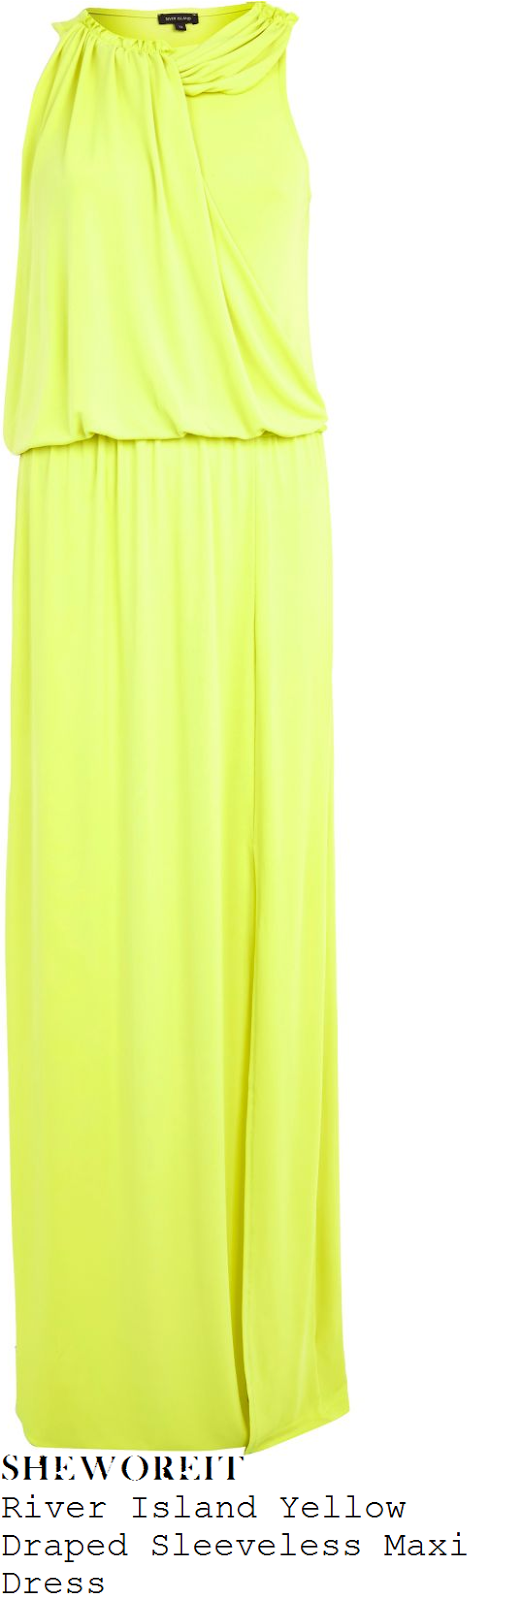 tamera-foster-yellow-sleeveless-draped-maxi-dress-x-factor